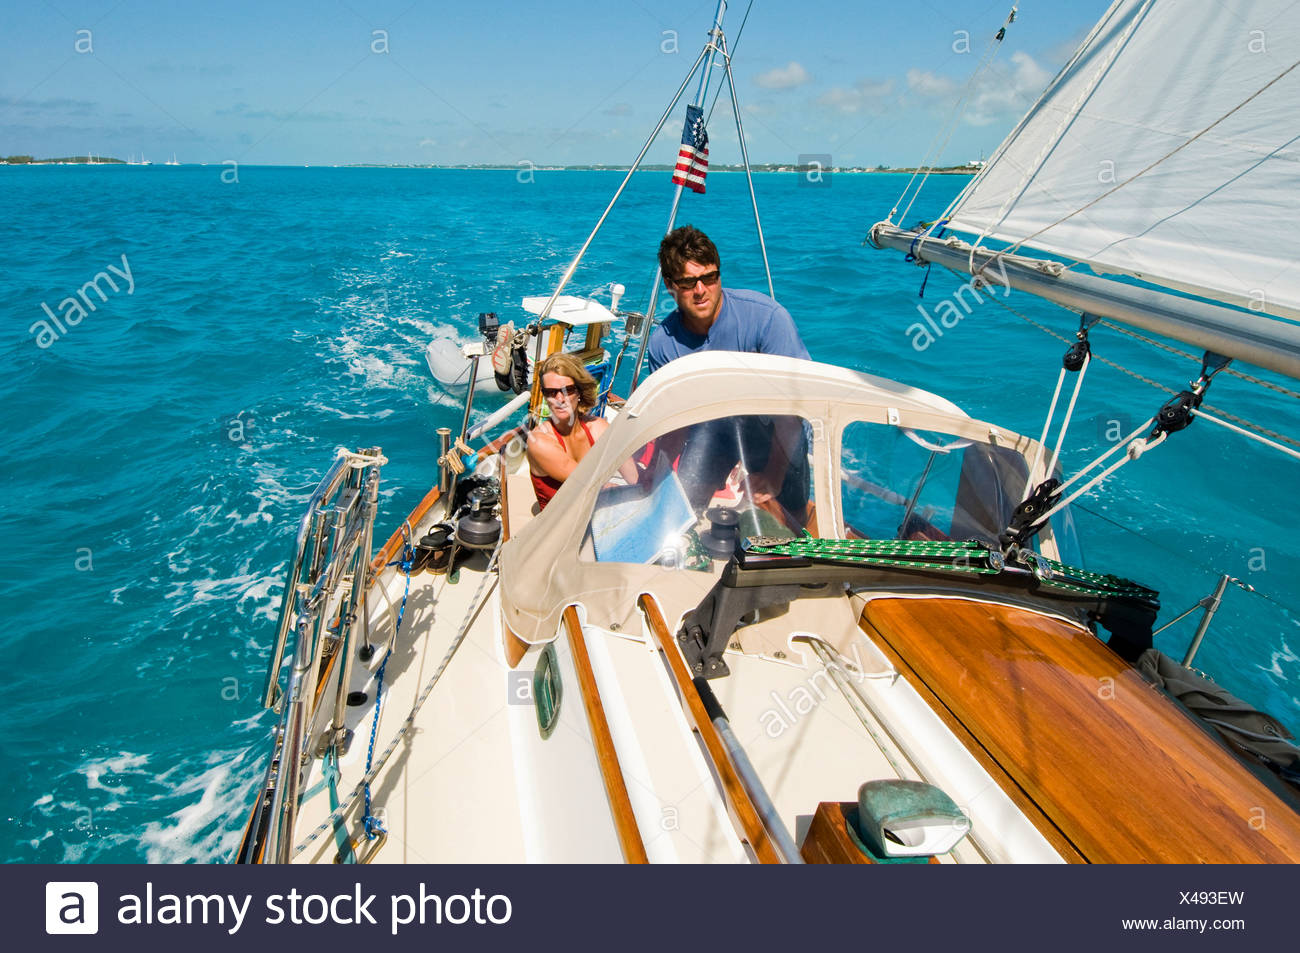 A family out for a day sail in Georgetown, Exumas - Stock Image